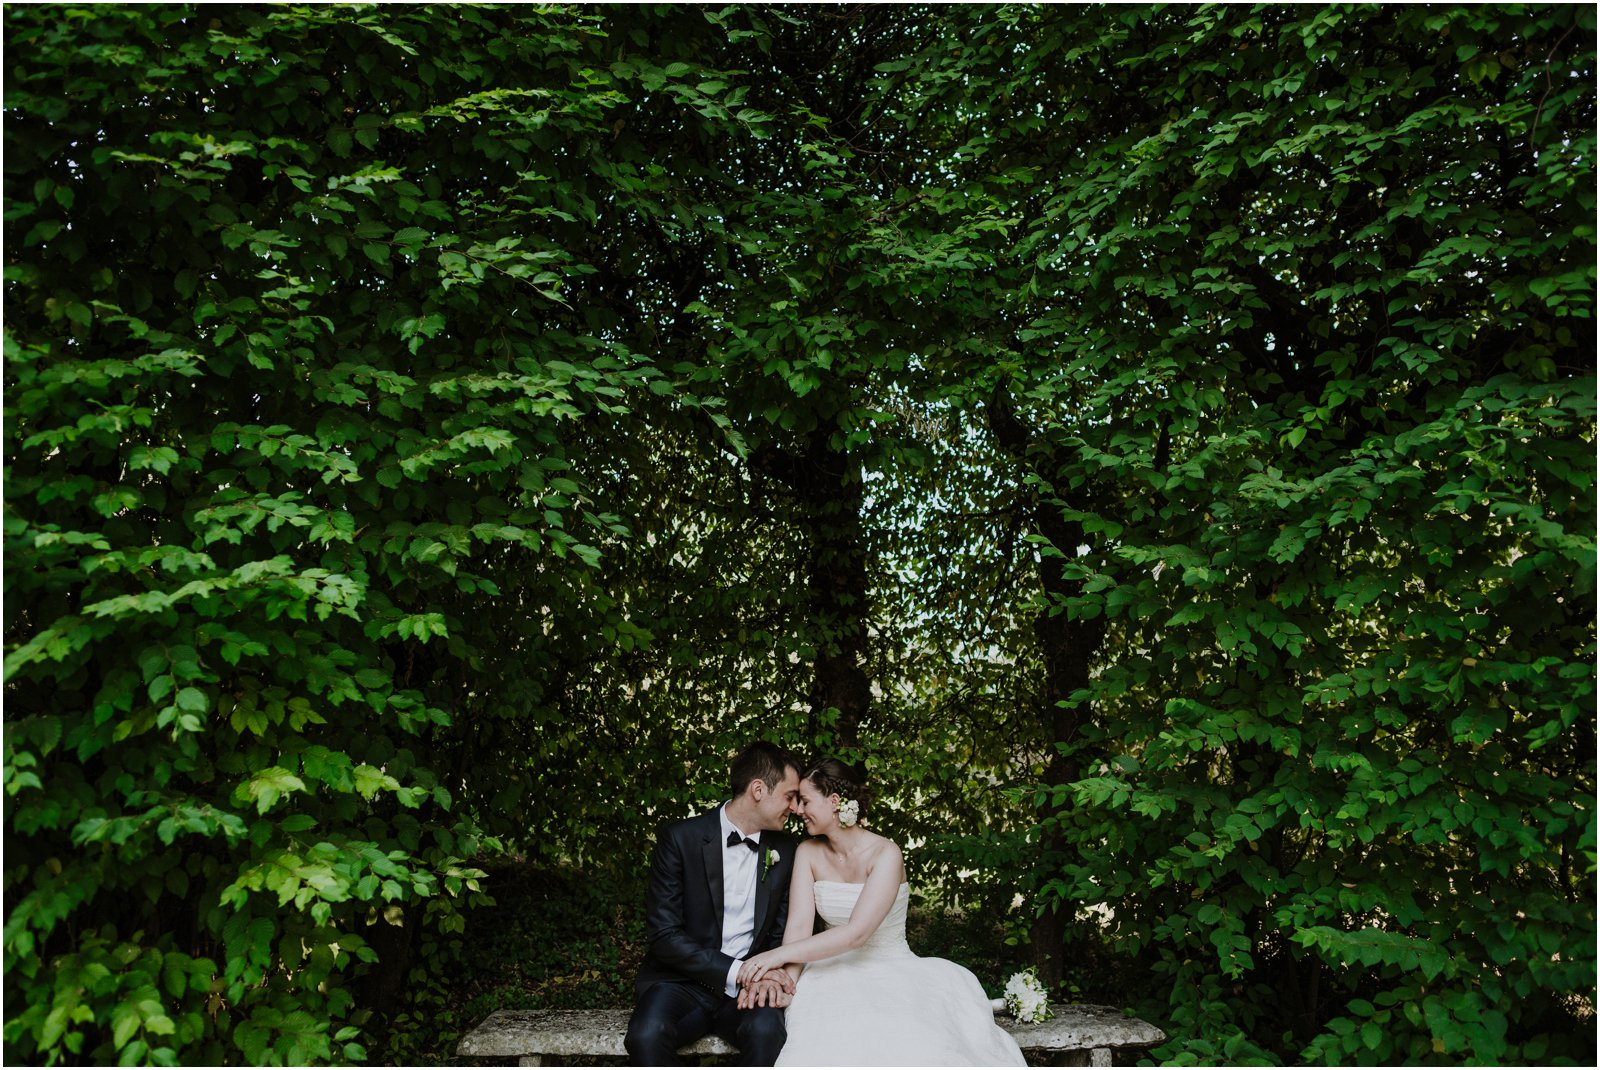 veronasposi foto e video matrimonio verona_0581